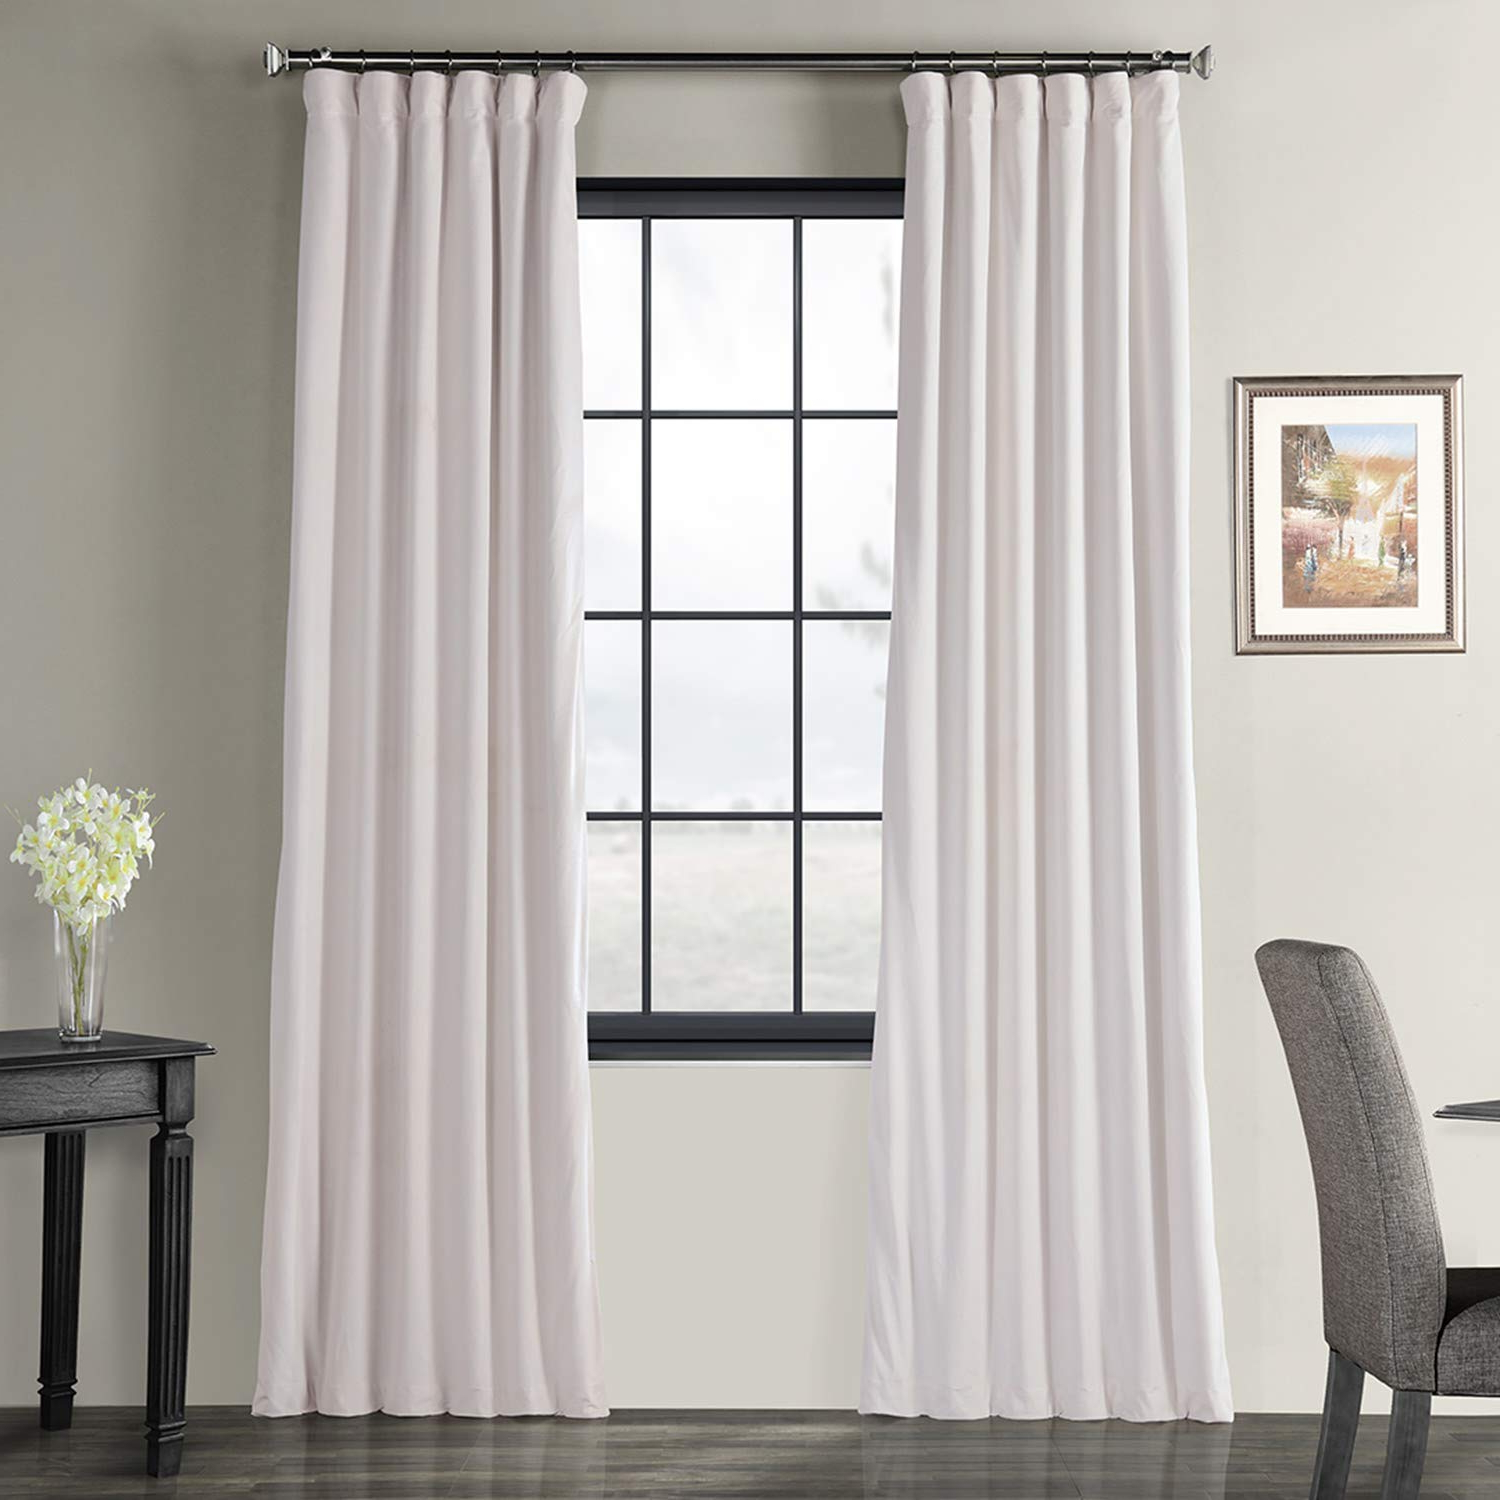 Favorite Half Price Drapes Vpch 110602 108 Signature Blackout Velvet Curtain, Off  White, 50 X 108 Inside Signature Blackout Velvet Curtains (View 6 of 20)